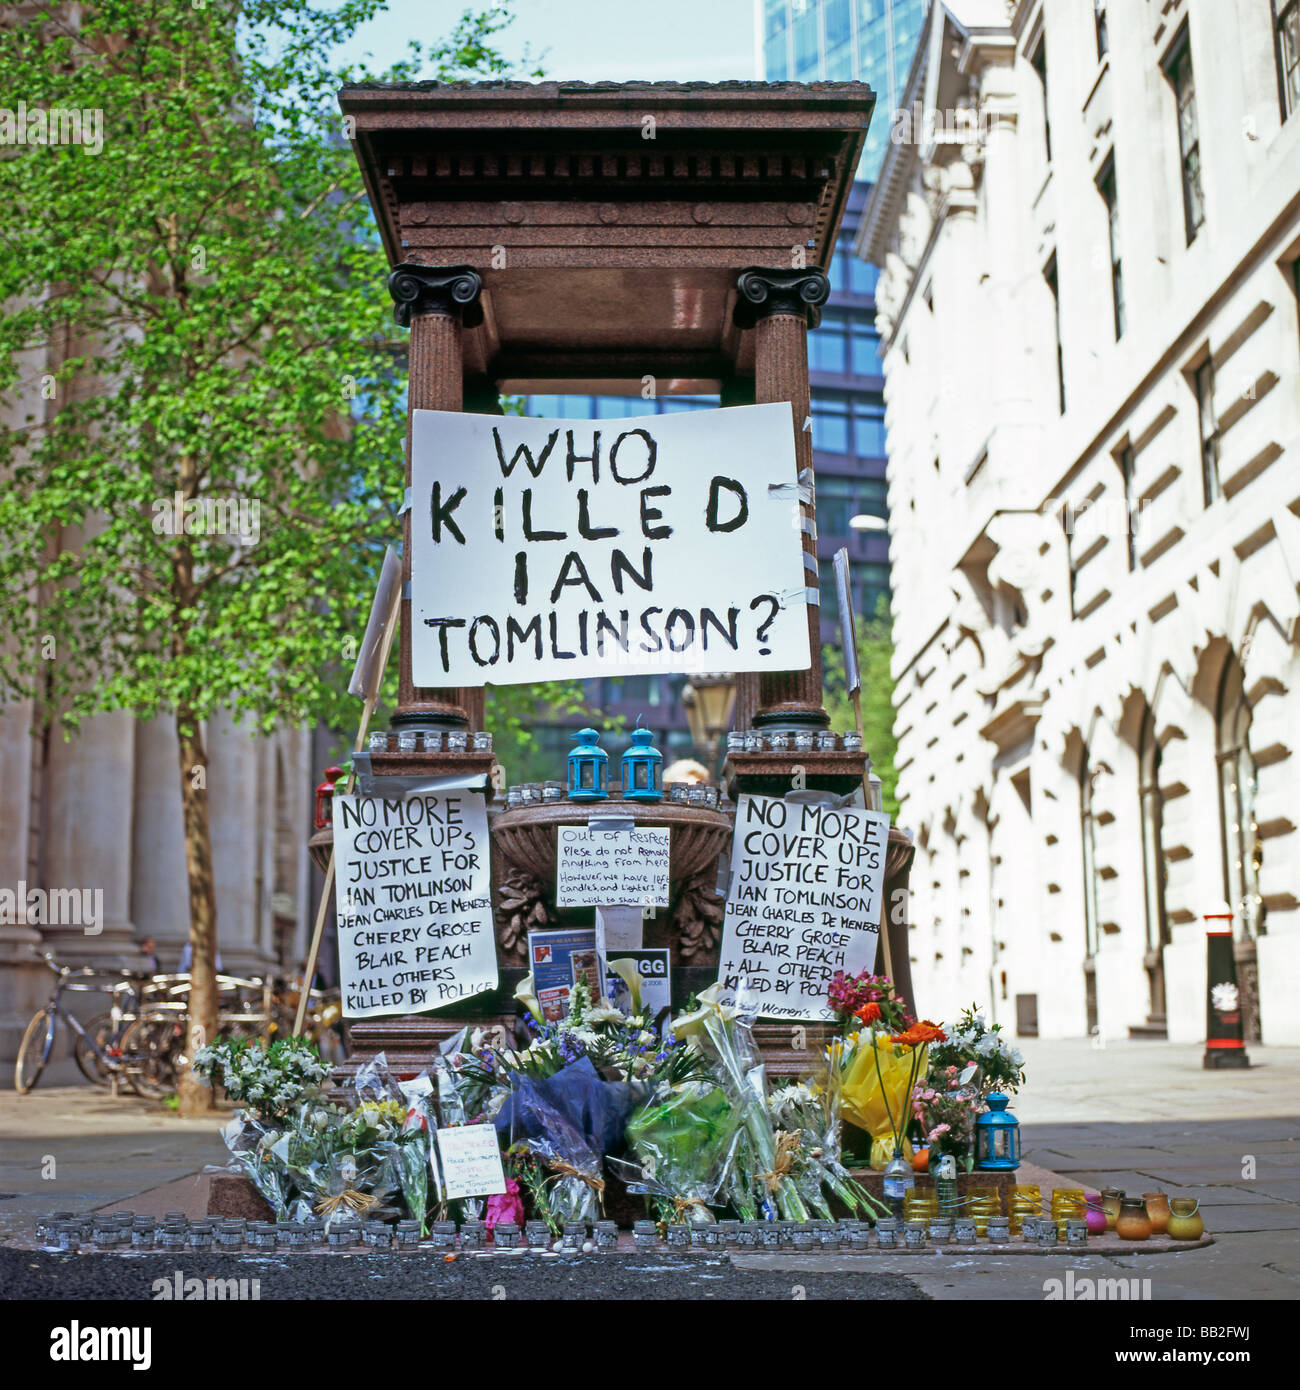 Memorial for Ian Tomlinson who died during the G20 demonstration London April 2009 - Stock Image